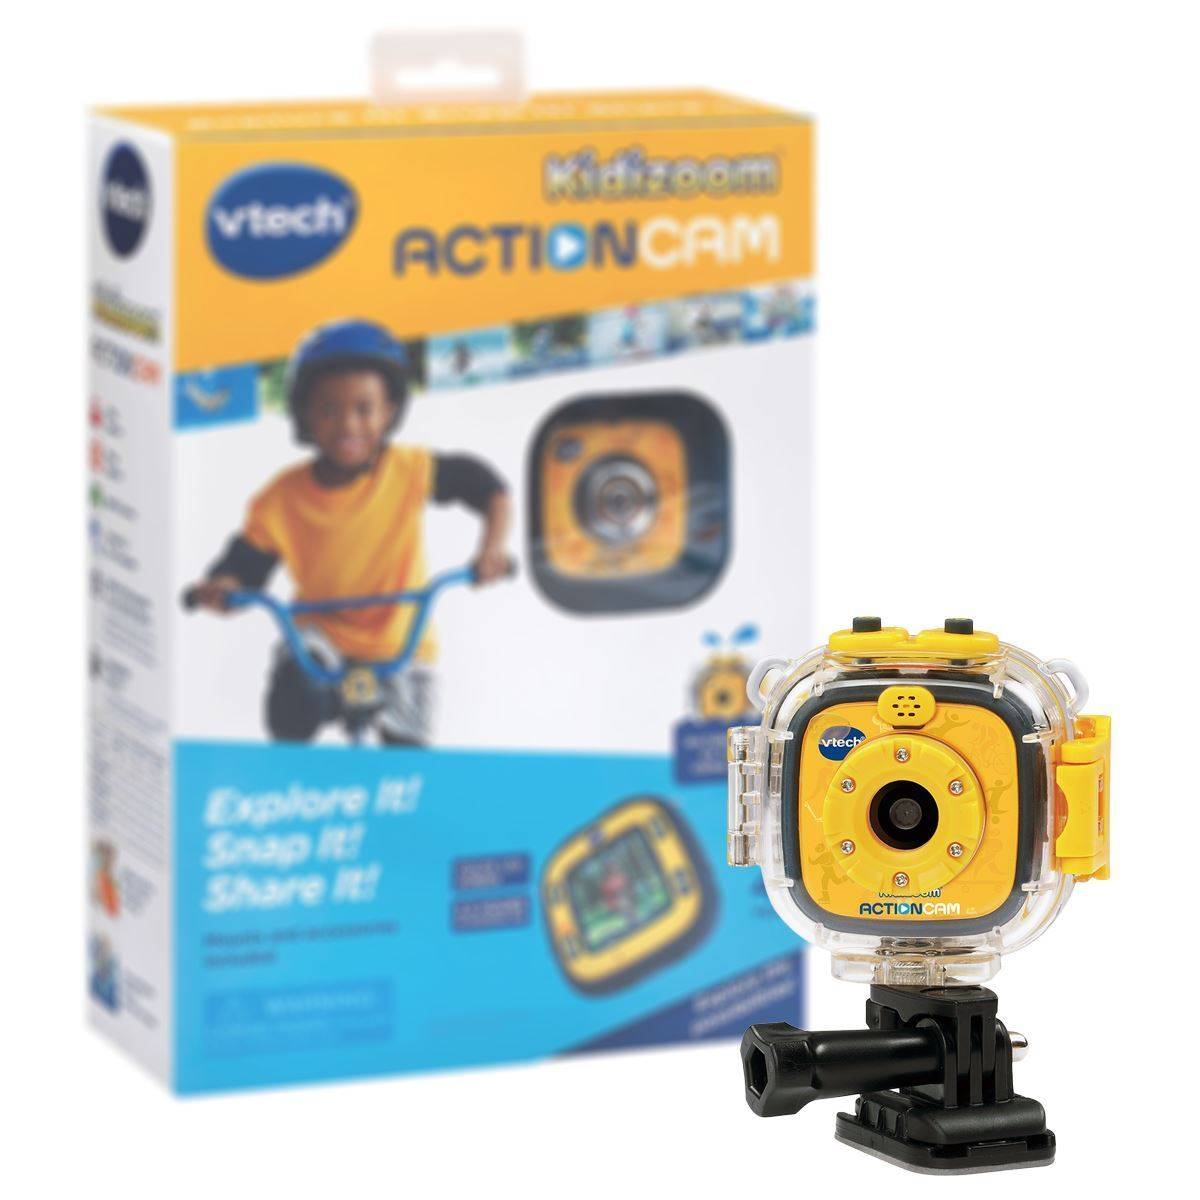 New Vtech Kidizoom Action Cam w  Mounting Gear & Waterproof Case Official